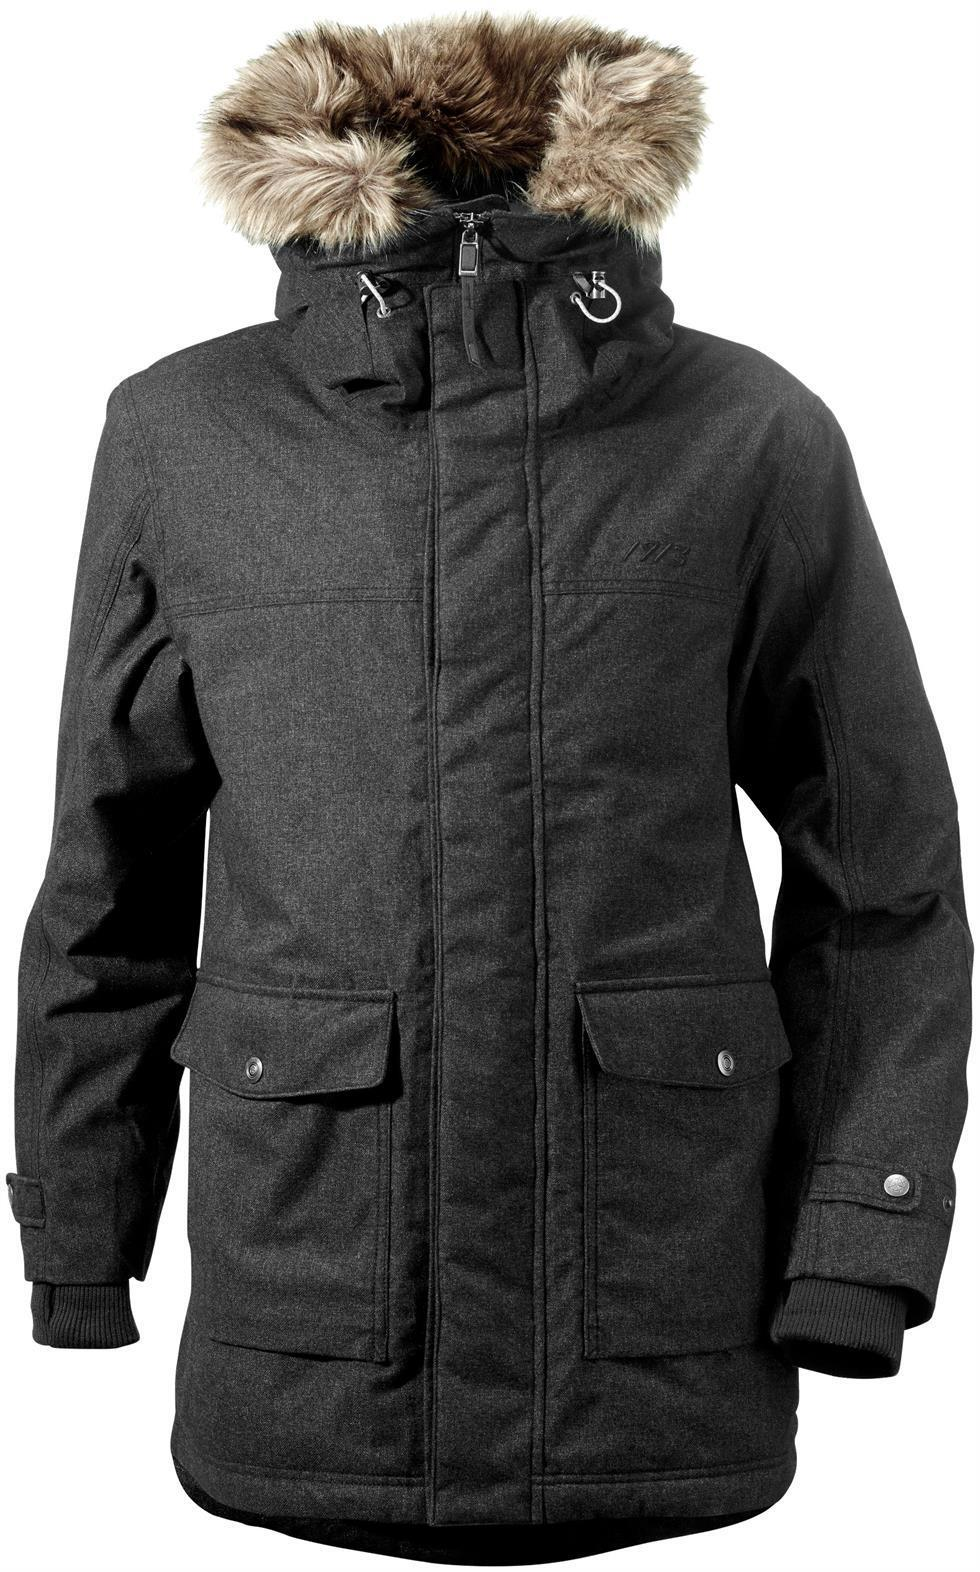 Didriksons Sven Mens Parka 100% Waterproof Insulated Fleece Lined